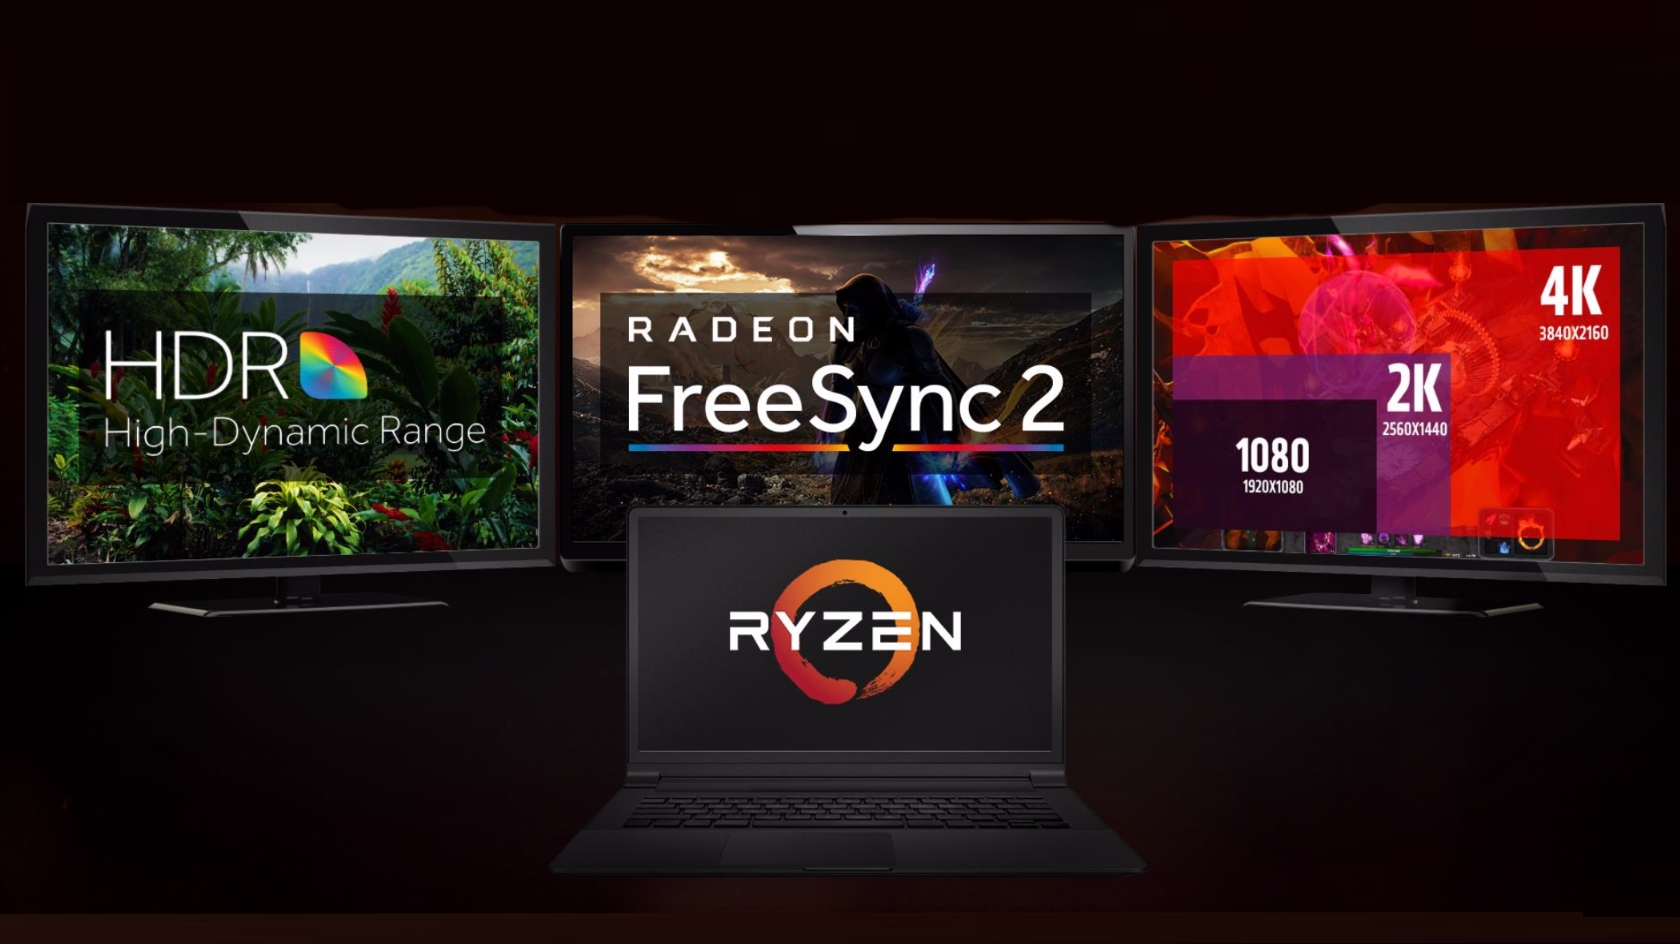 AMD's Ryzen mobile processors arrive to seriously power-up laptops